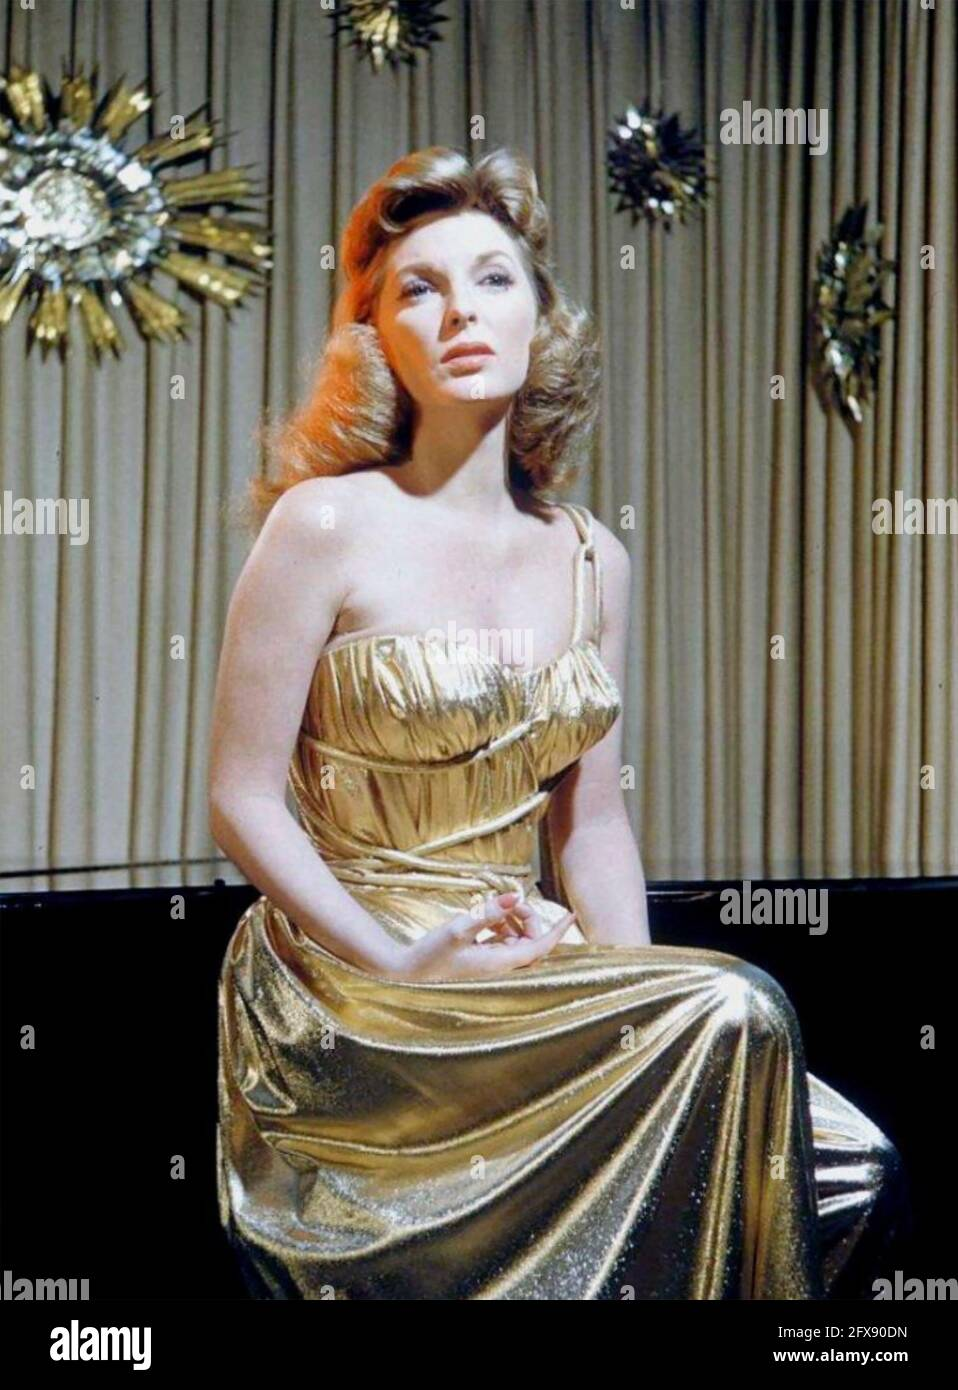 JULIE LONDON (1926-2000) American singer and fim actress about 1957 Stock Photo